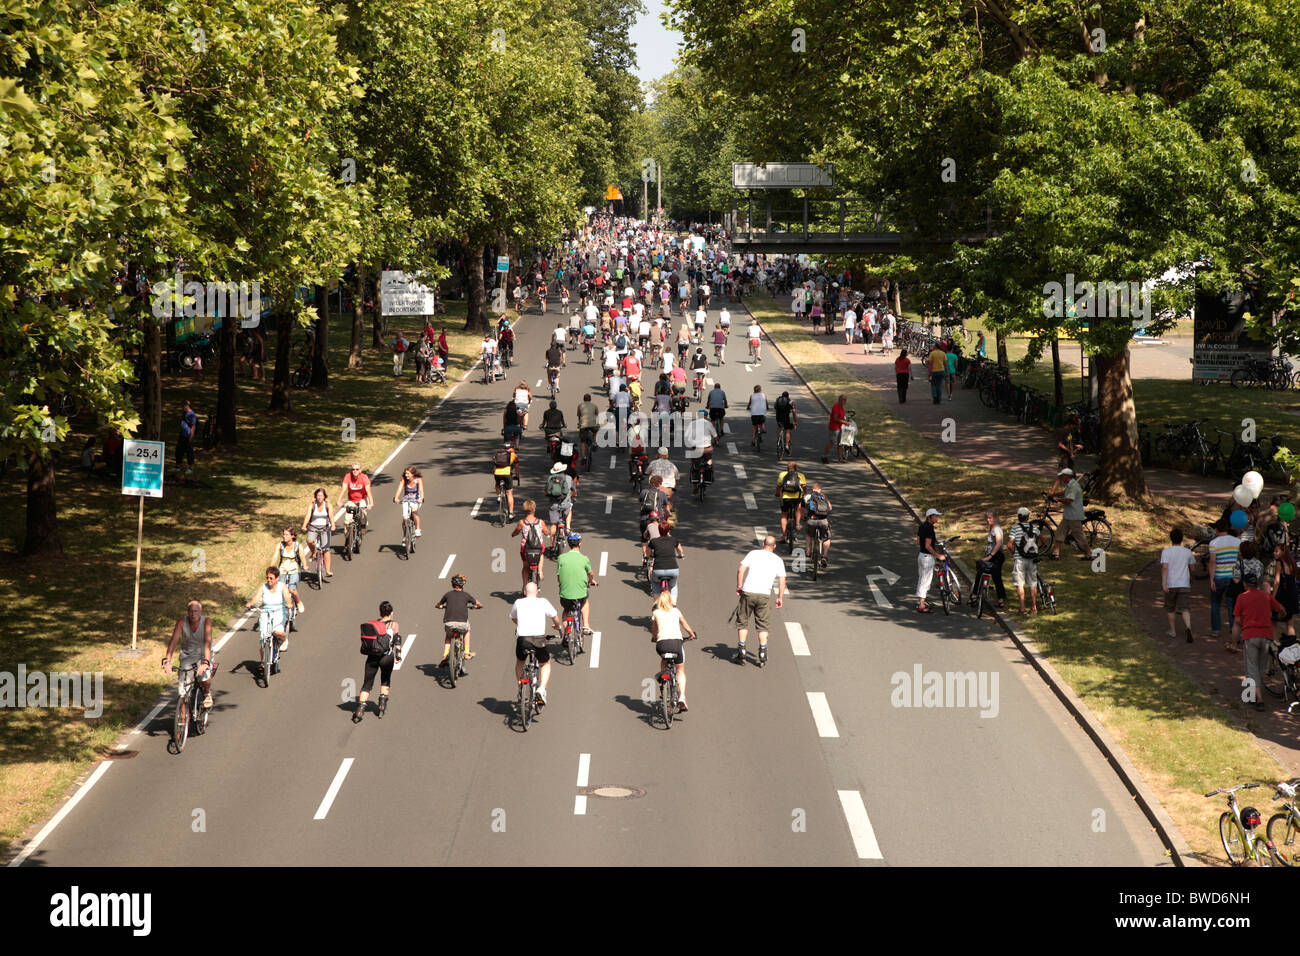 bicycles on the german highway A40 in dortmund, ruhr area - Stilleben event in Summer 2010 - Stock Image